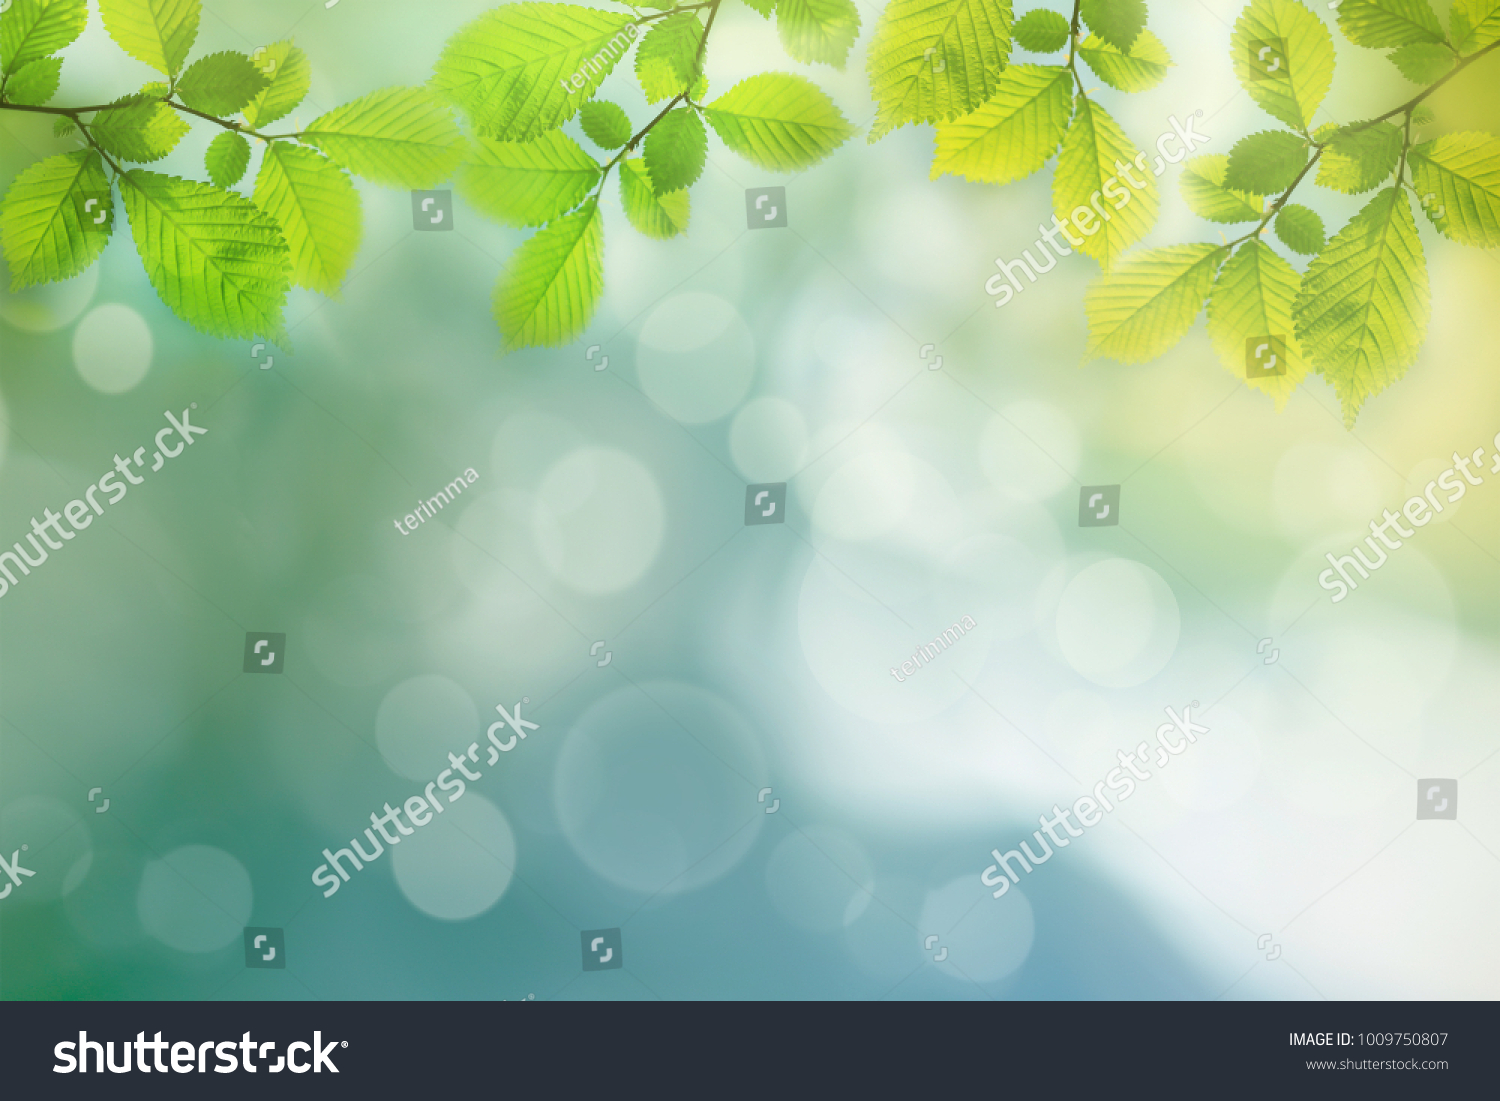 Spring background, green tree leaves on blurred background #1009750807